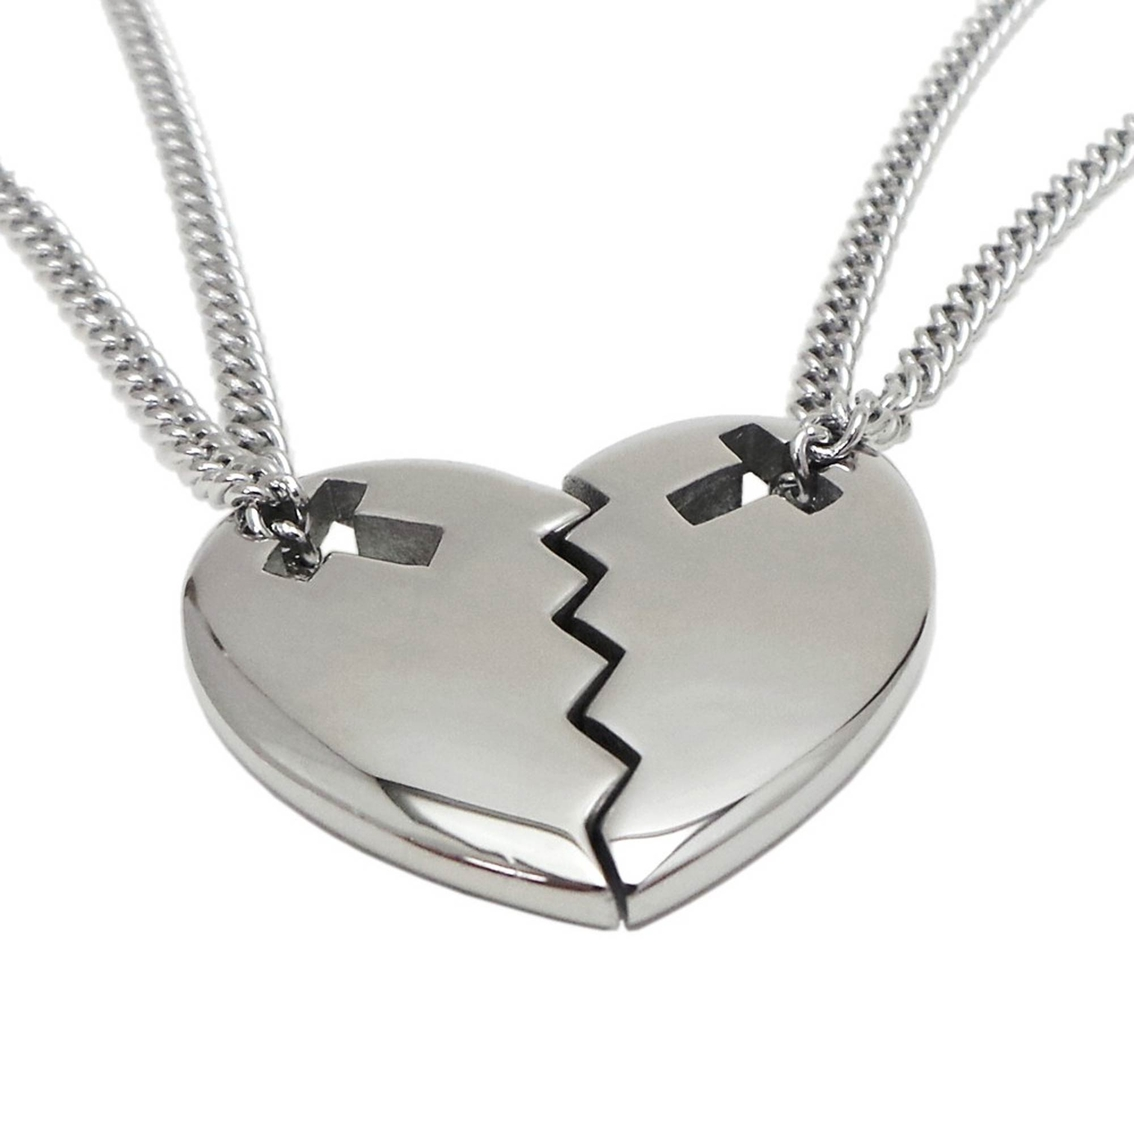 Shields of strength friends stainless steel heart cross for Stainless steel jewelry durability